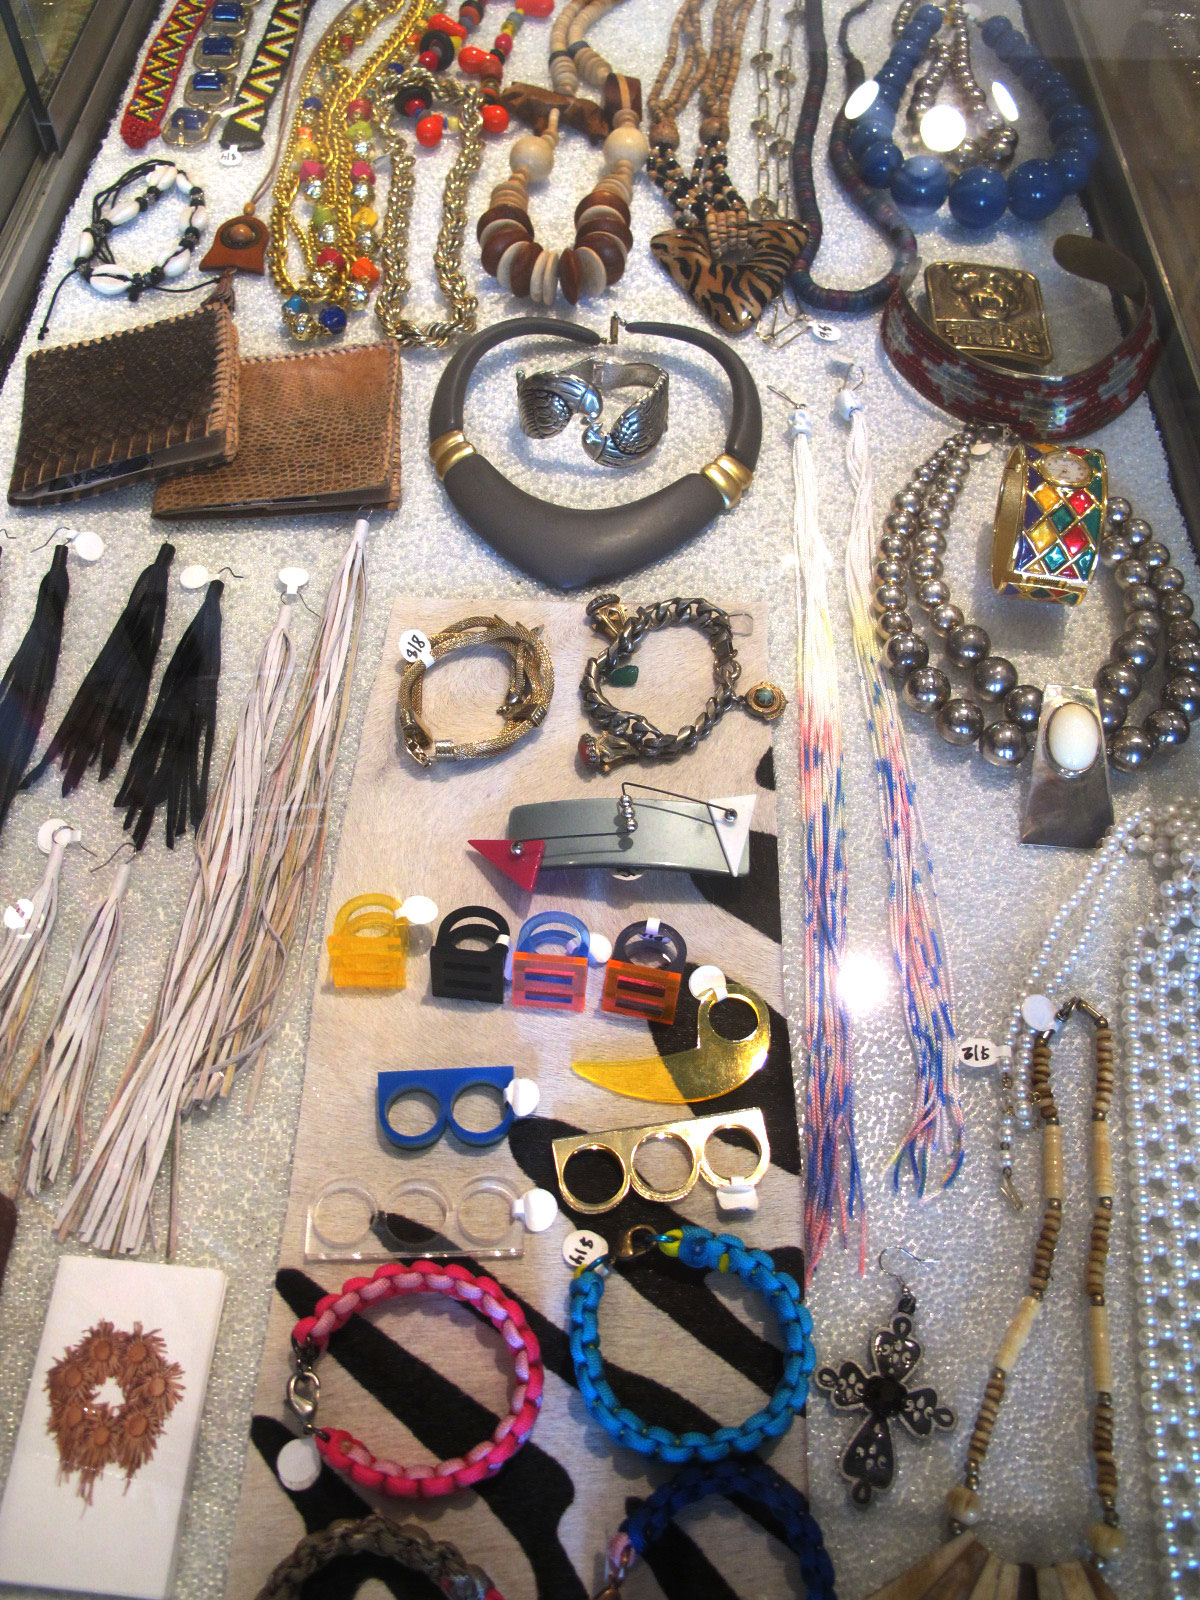 At Kokorokoko we not only have an awesome selection of vintage costume jewelry from the 80s and 90s but we also carry local jewelry designers. & KOKOROKOKO: Vintage and Designer Jewelry at Kokorokoko